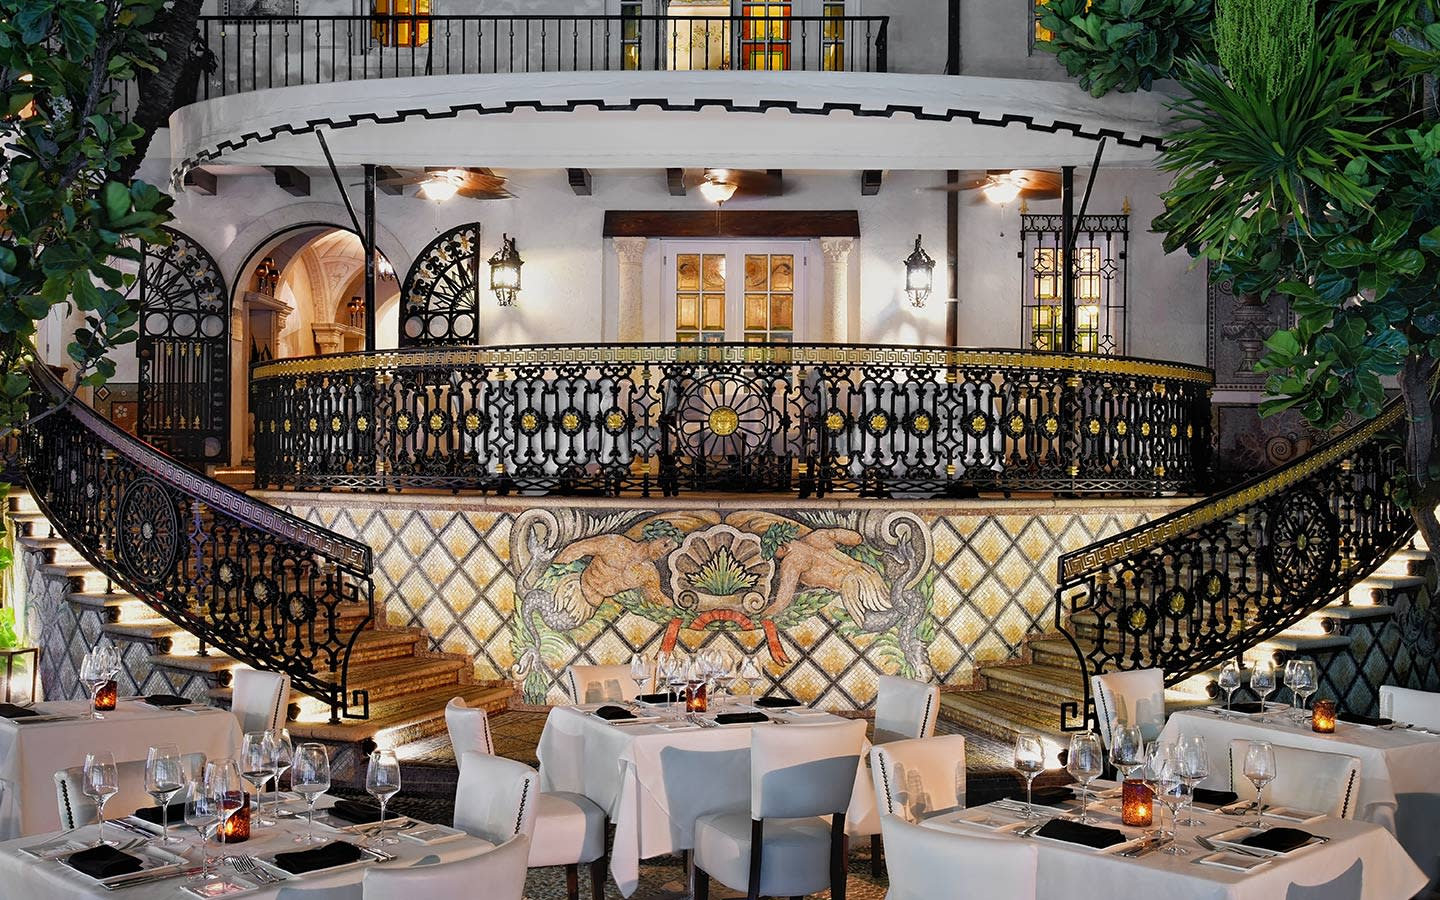 The Villa Casa Casuarina restaurant